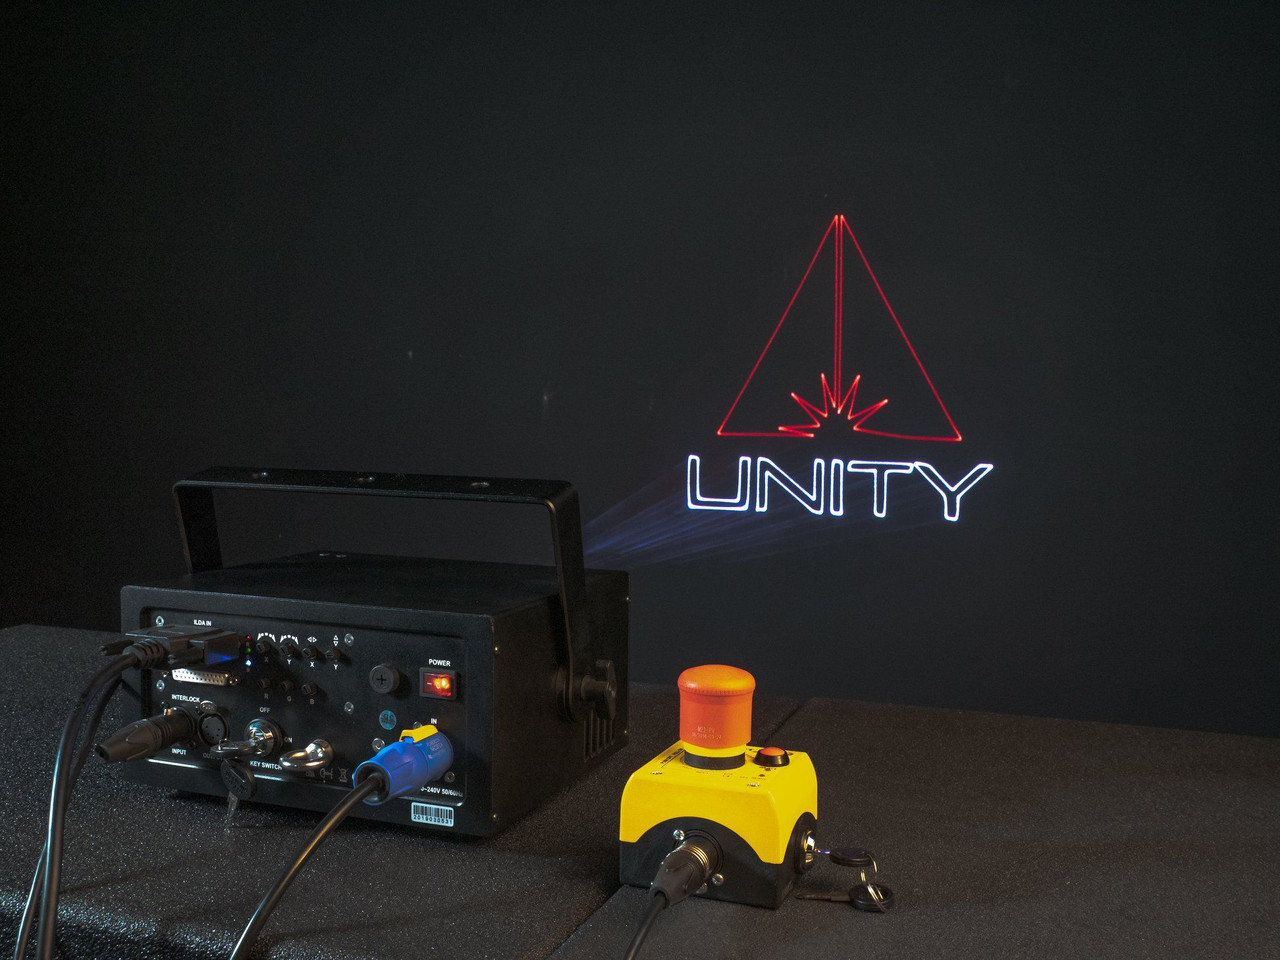 Unity Lasers ELITE 3 ILDA Laser Light Show Projector